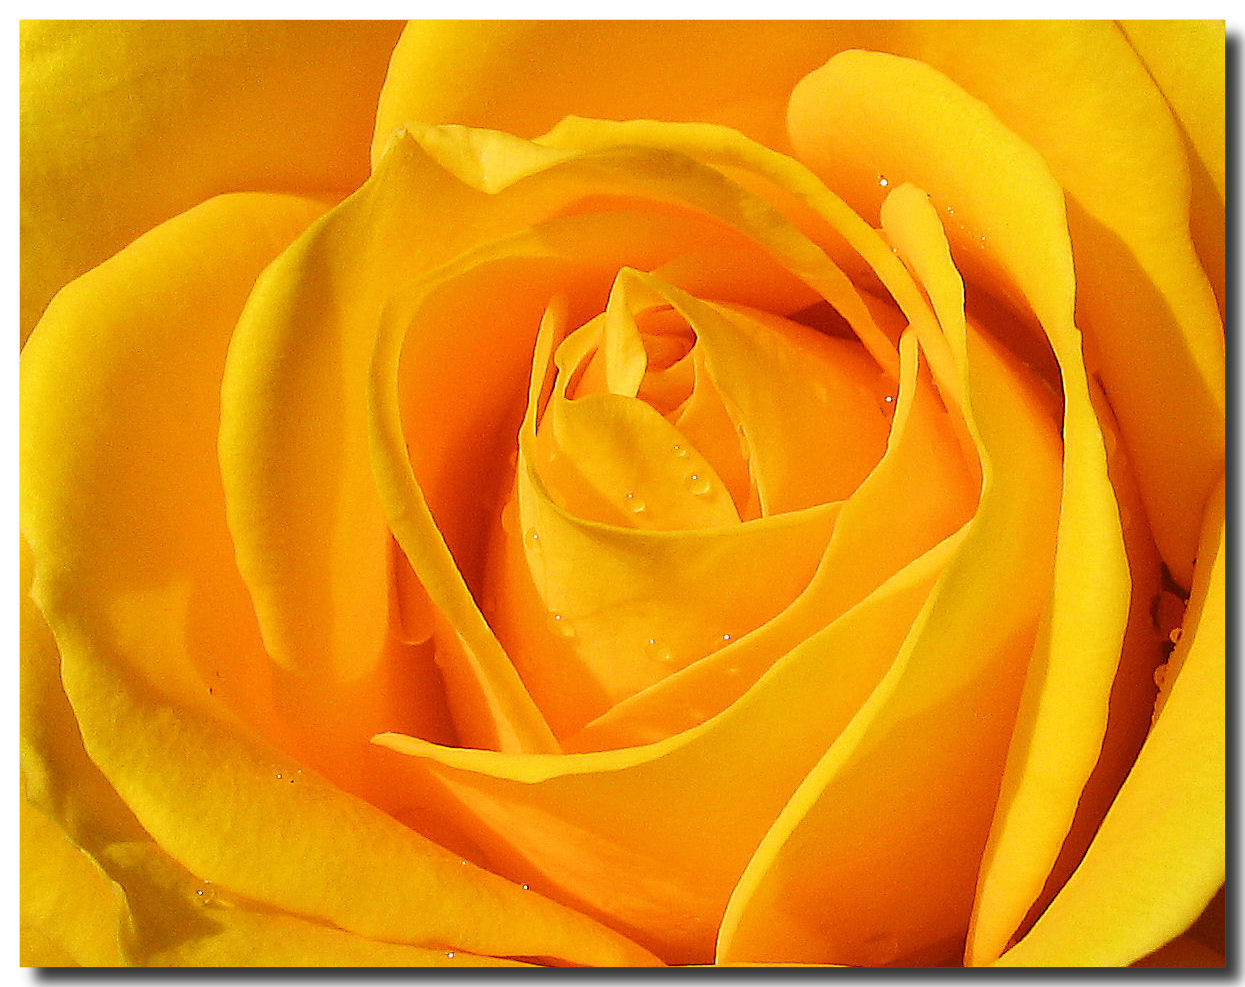 wallpaper of yellow roses - photo #11